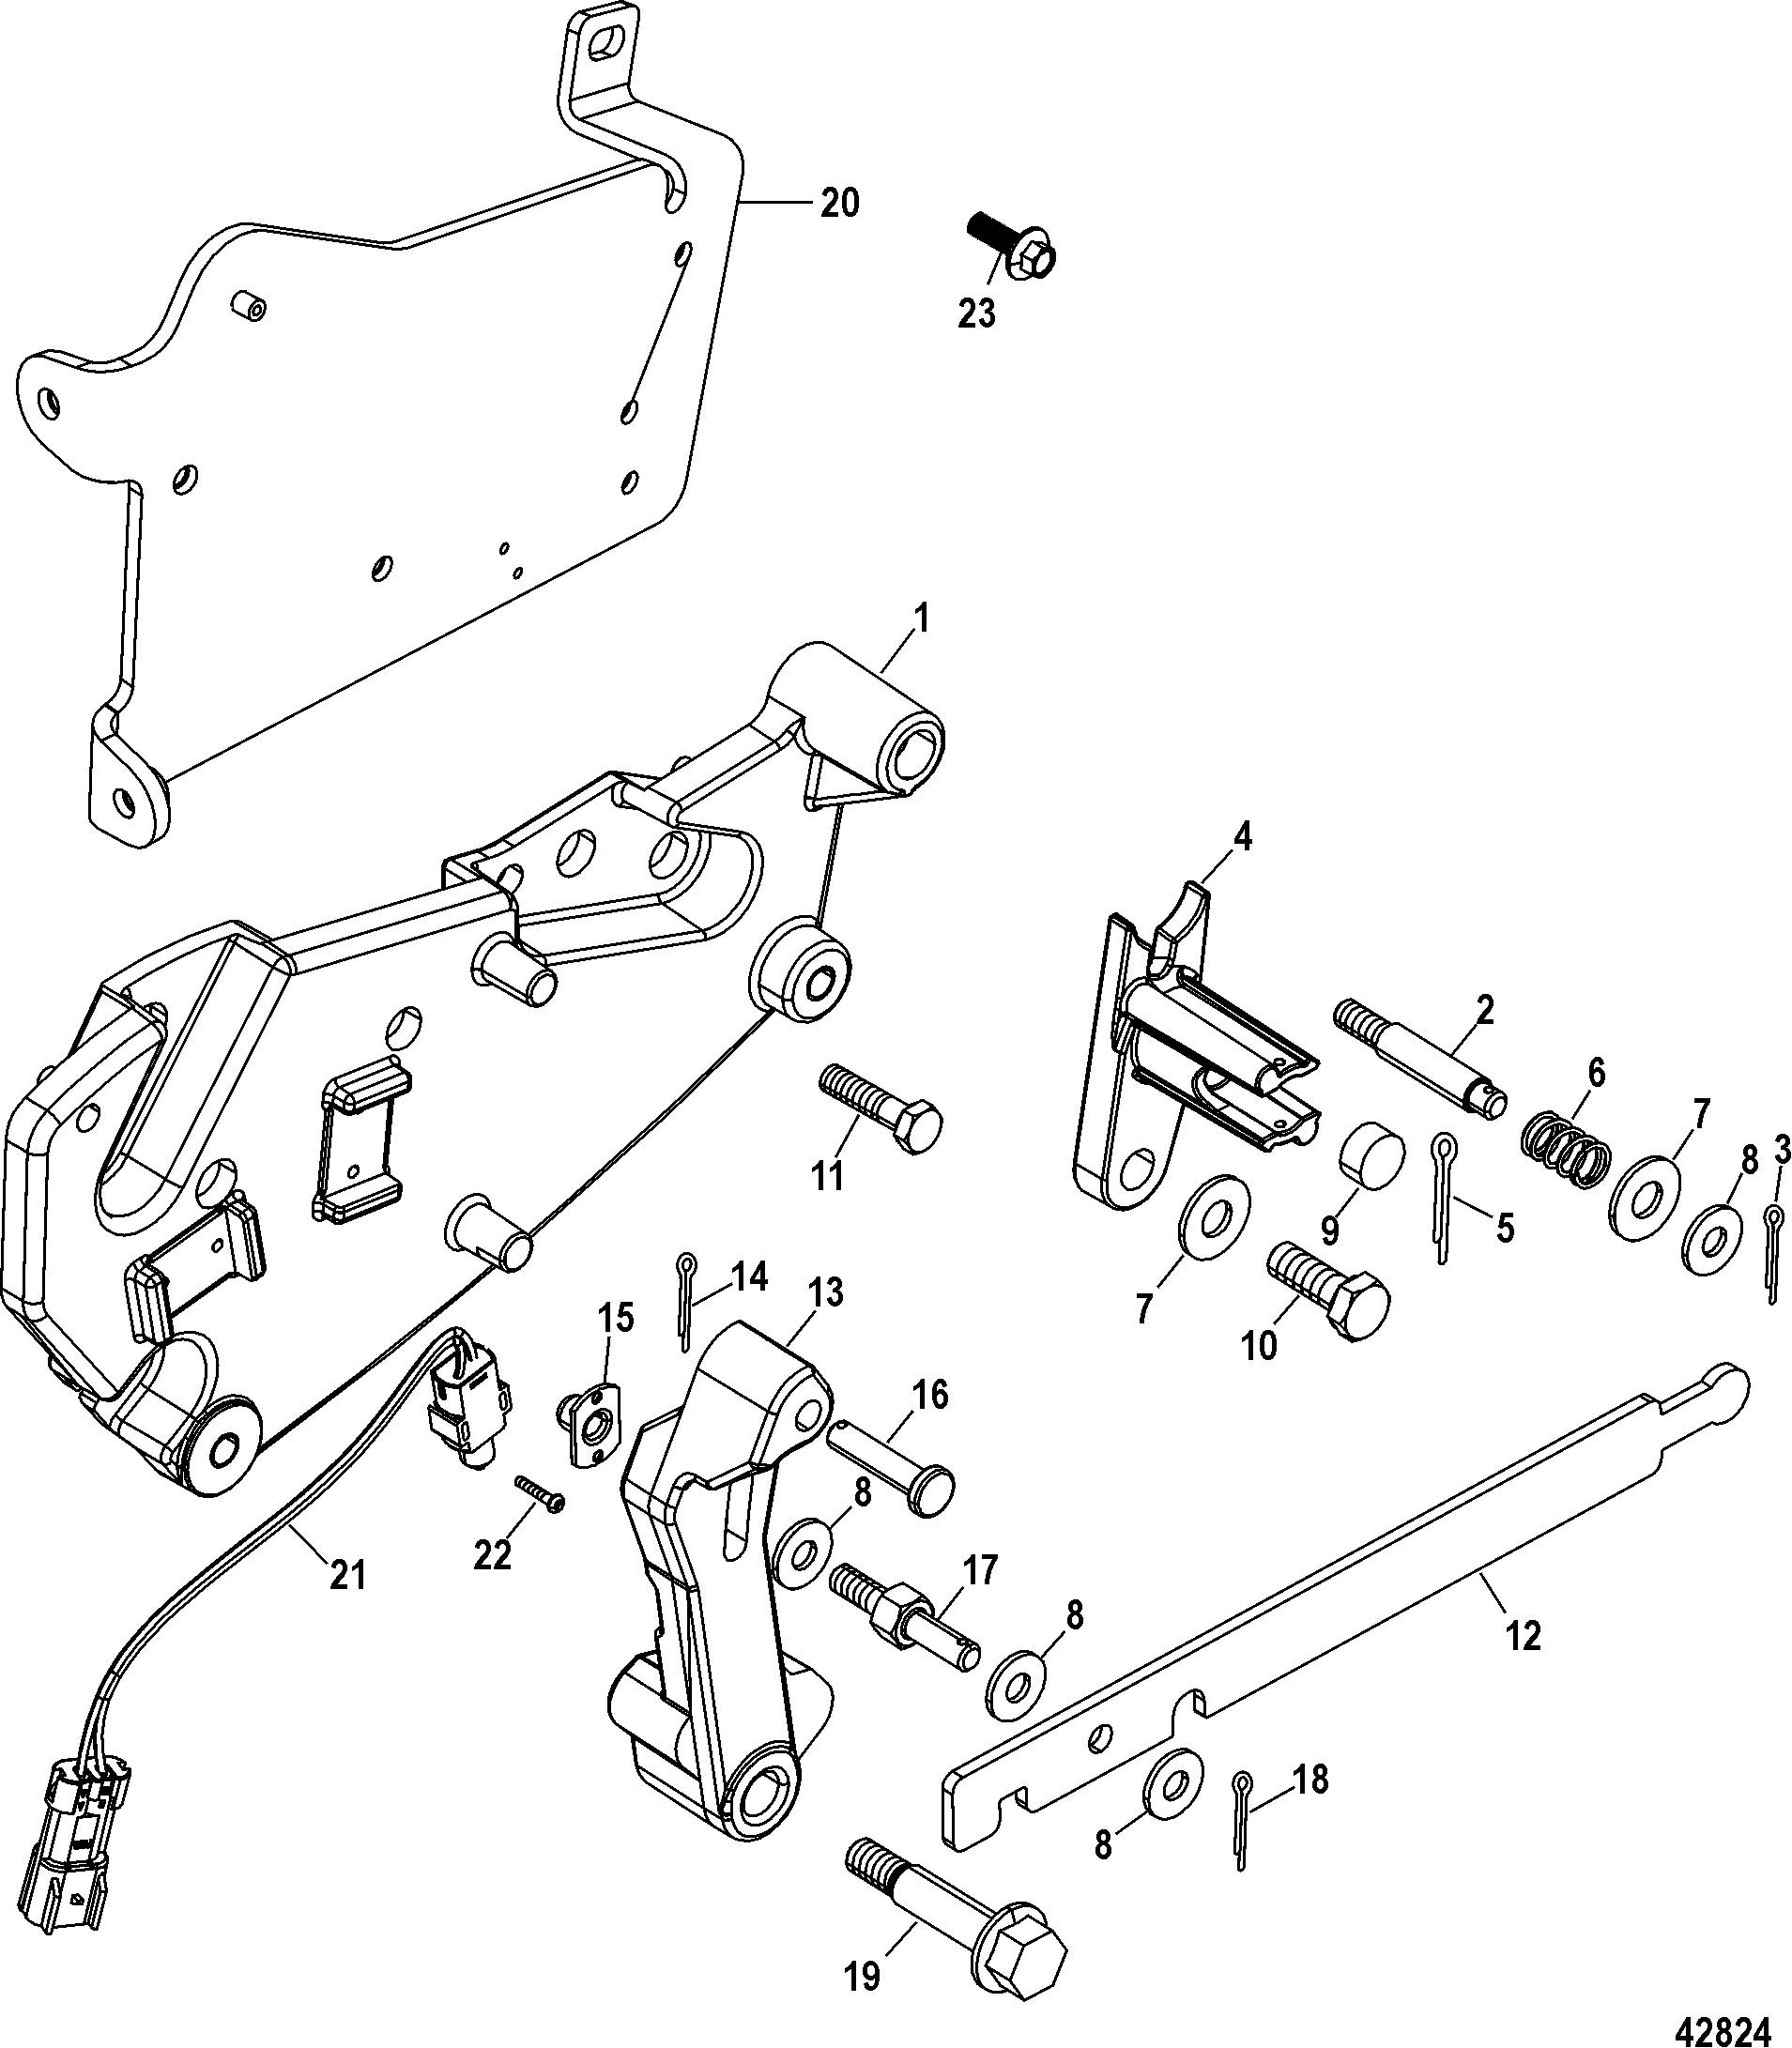 2310 Ford Tractor Wiring Harness Diagram furthermore New Holland Tractor Wiring Diagram moreover Wiring Harness For New Holland 4630 in addition Ford 1715 Wiring Diagram besides New Holland Engine Diagram. on ford 8240 wiring diagram